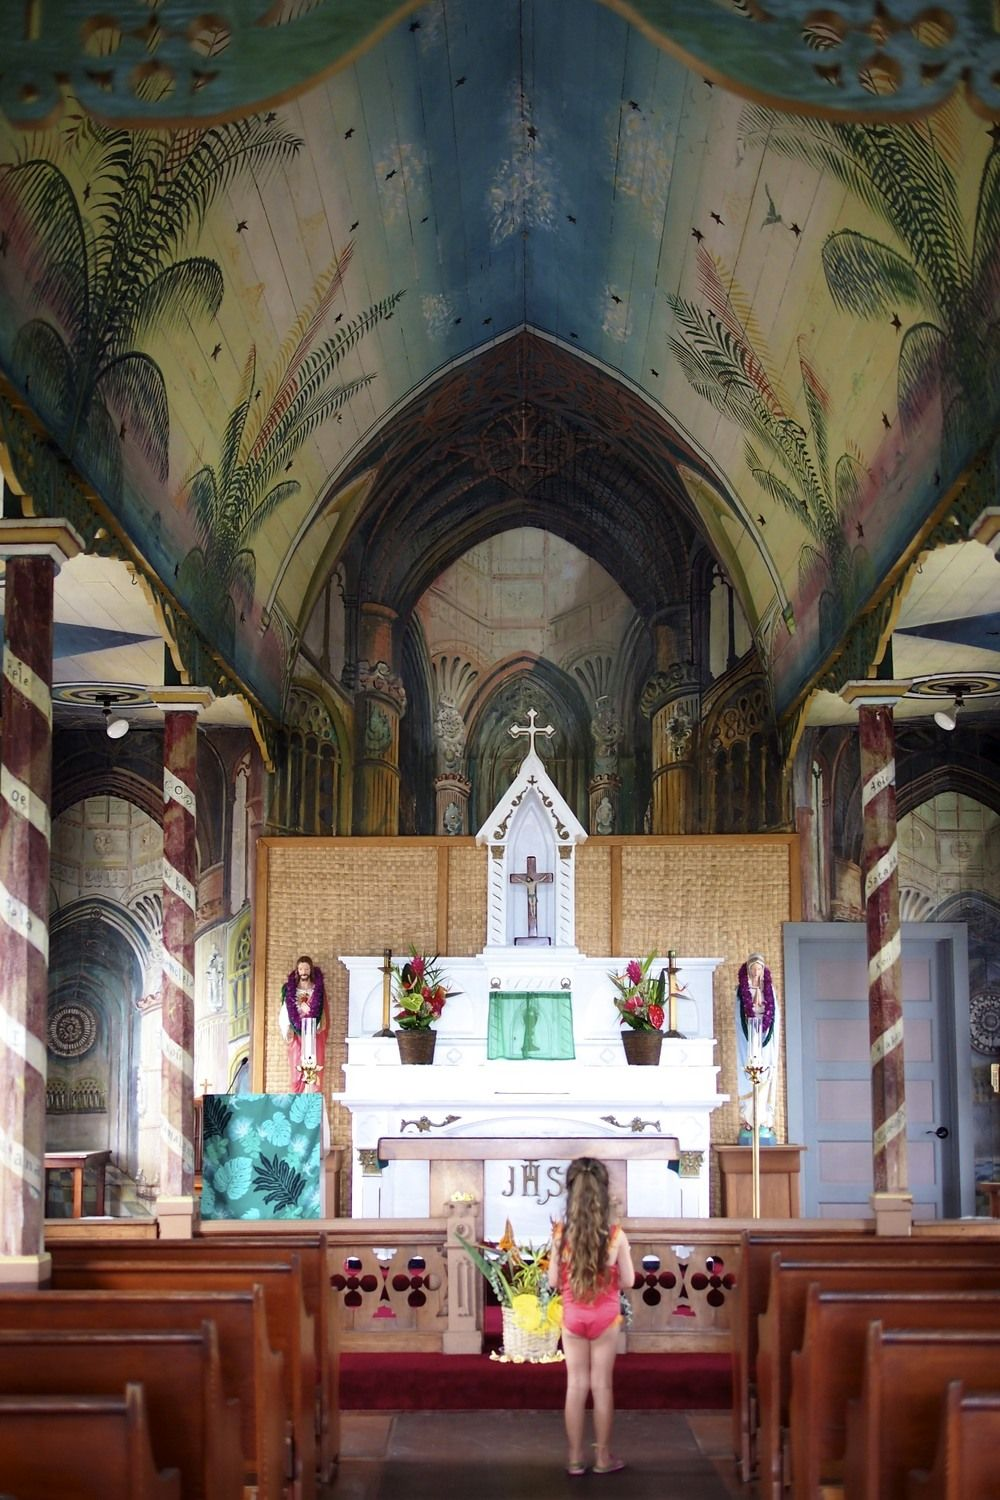 The Painted Church.